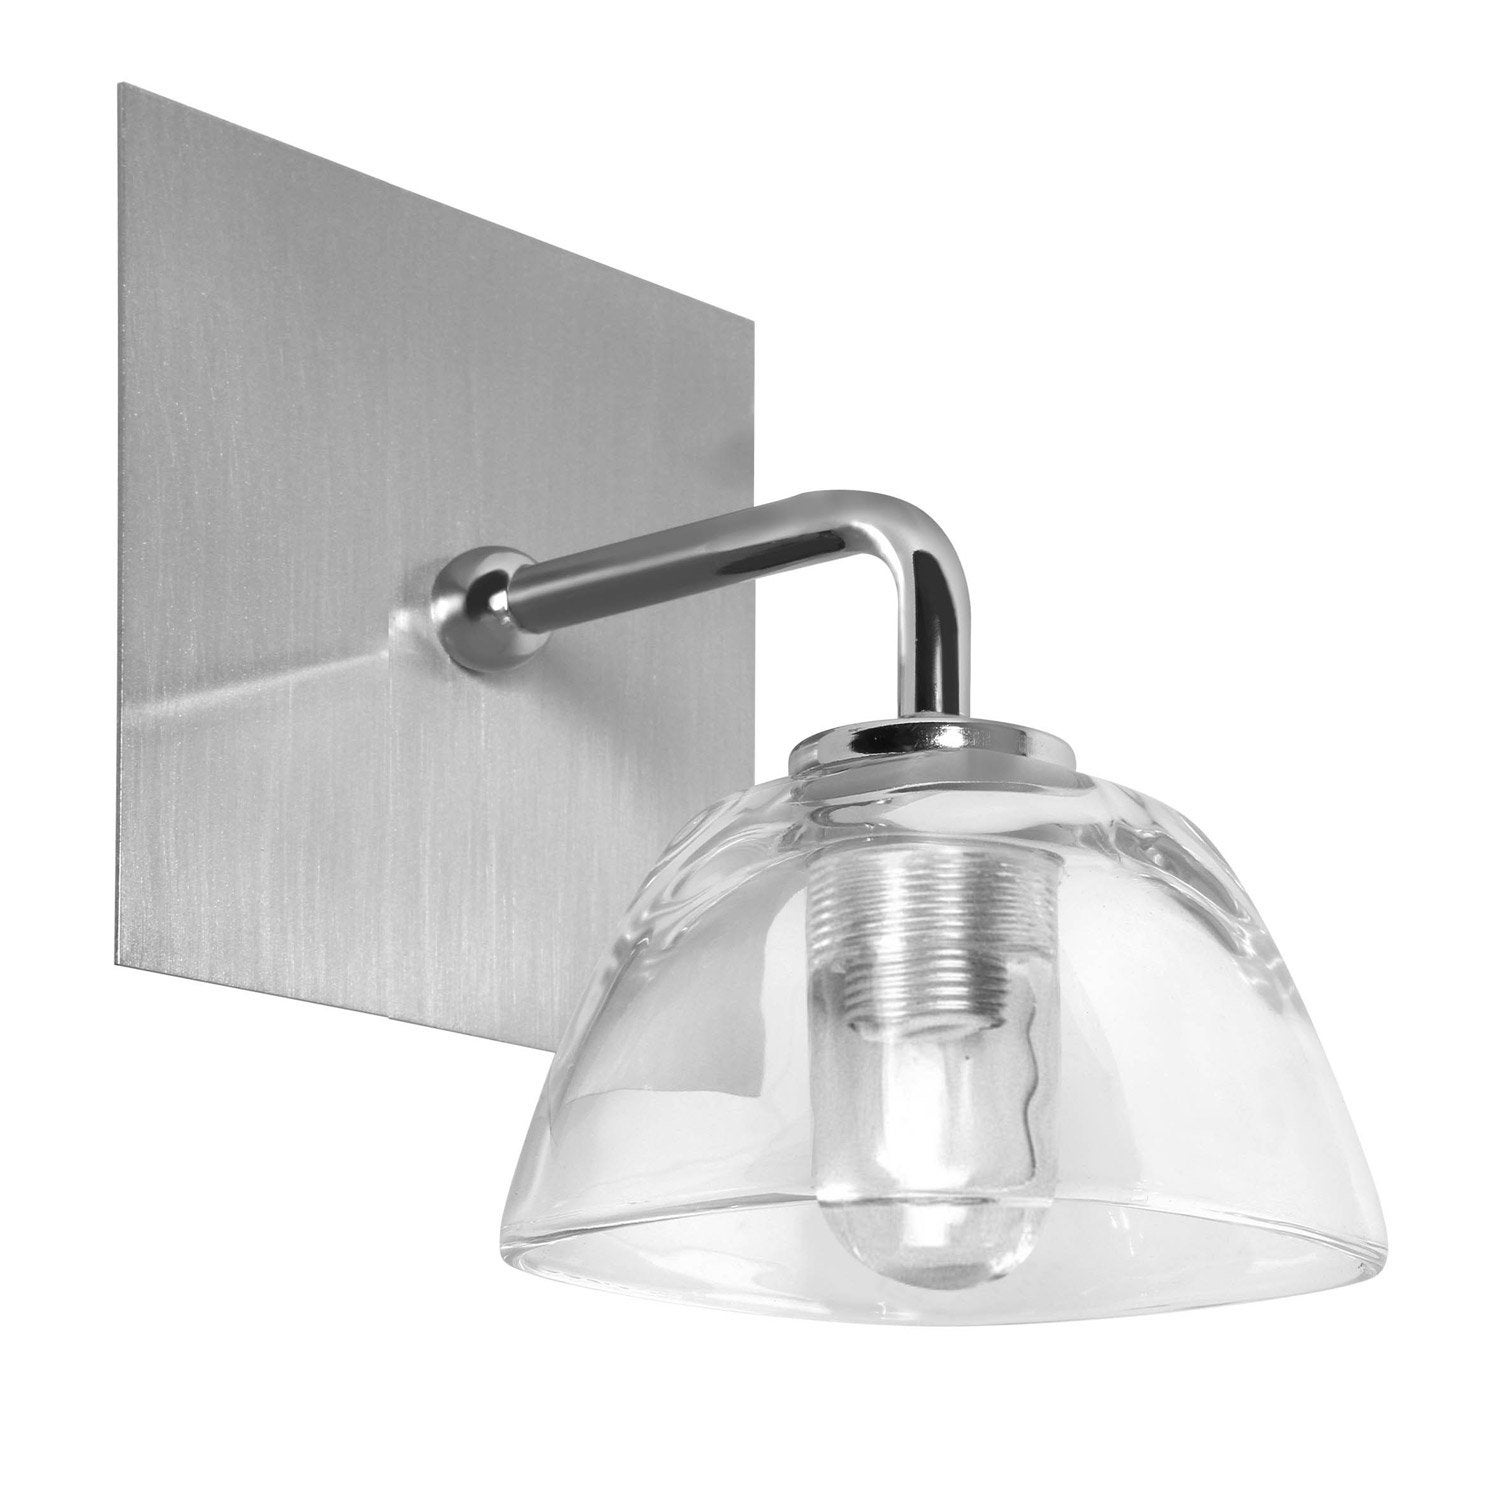 Applique fixer mila halog ne 1 x 28 w g9 chrome for Applique salle de bain design